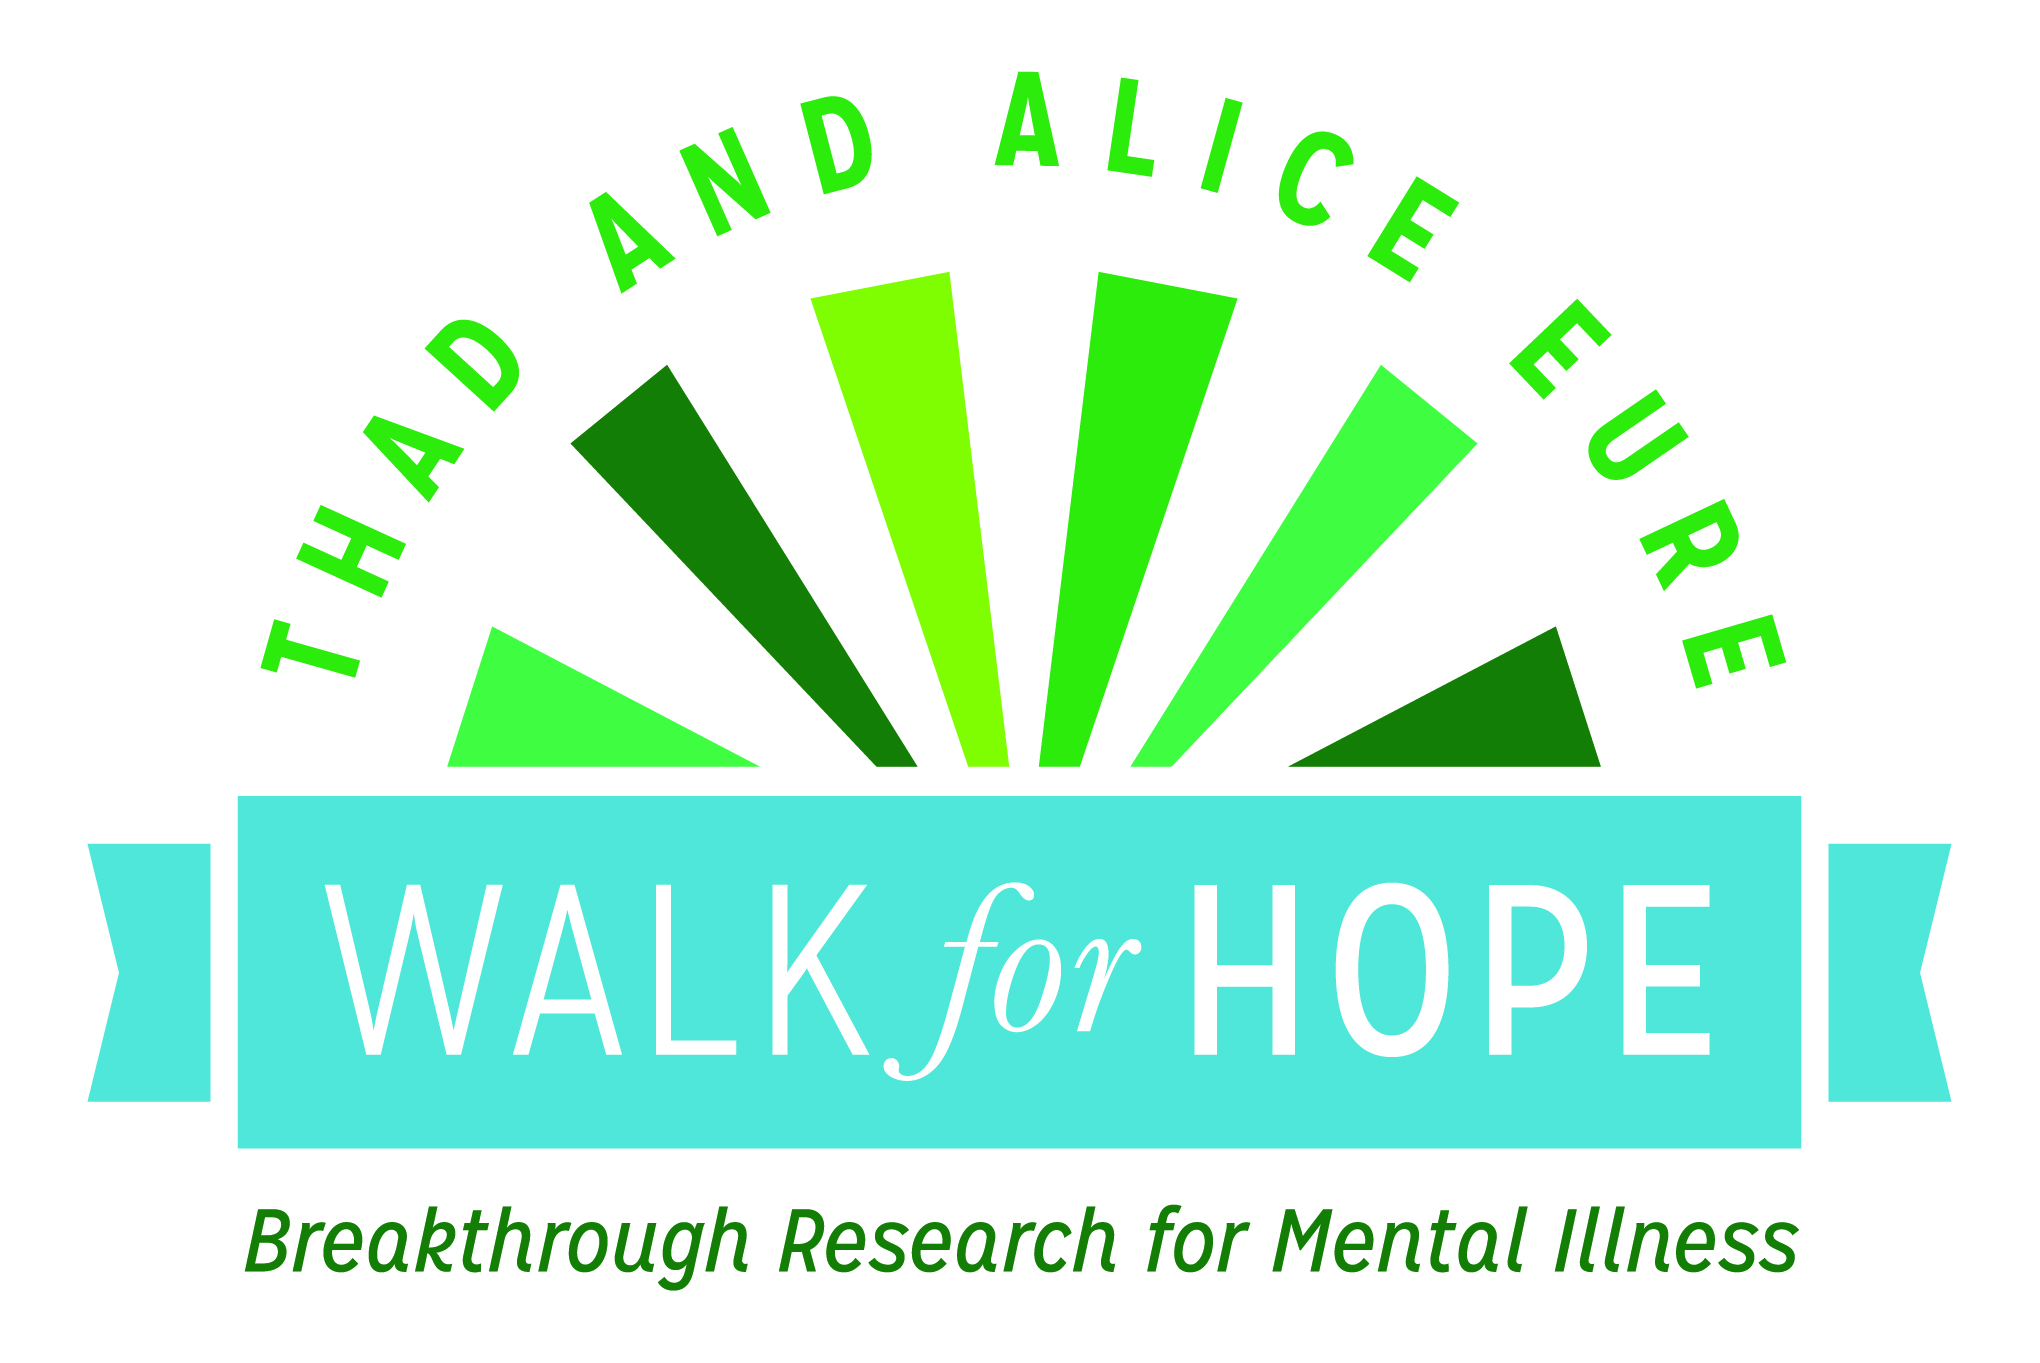 31st Annual Thad & Alice Eure Walk/Run for Hope